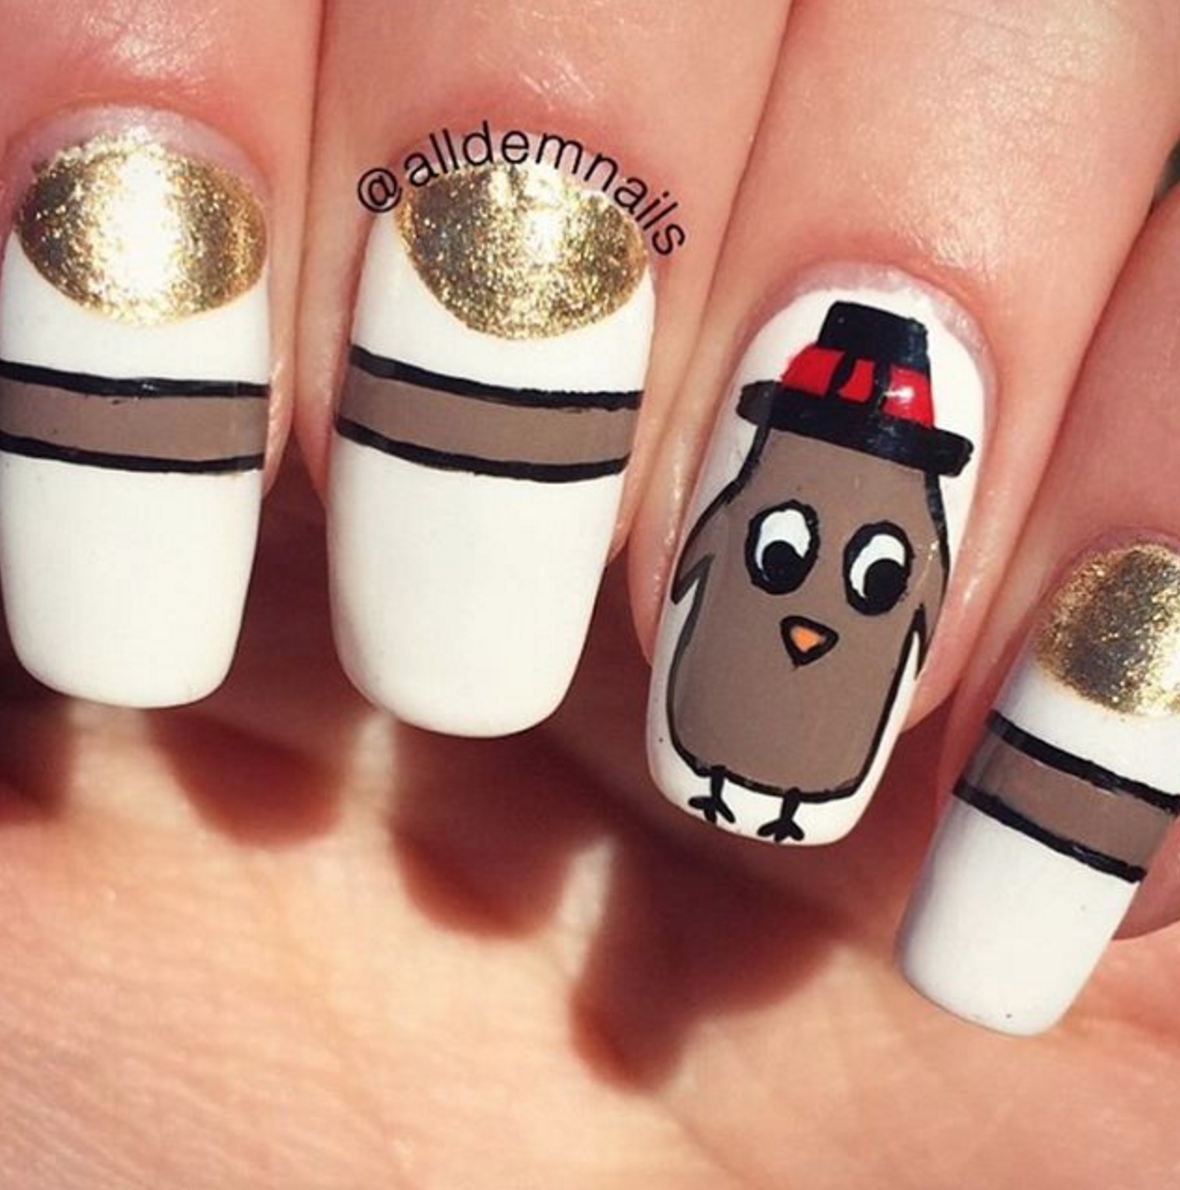 25 thanksgiving nail art designs ideas for november nails prinsesfo Choice Image